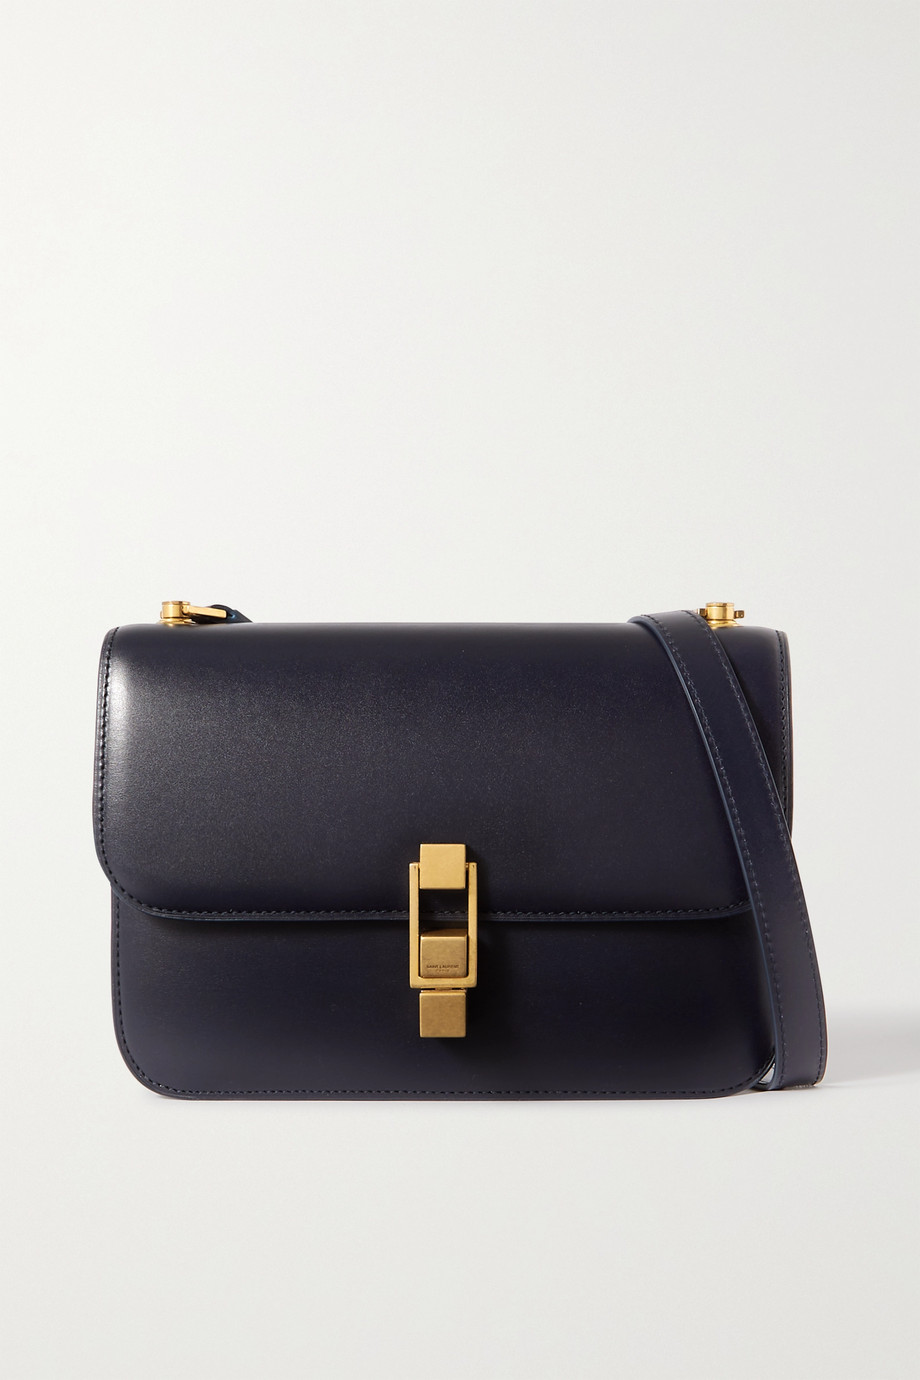 SAINT LAURENT Le Carré leather shoulder bag